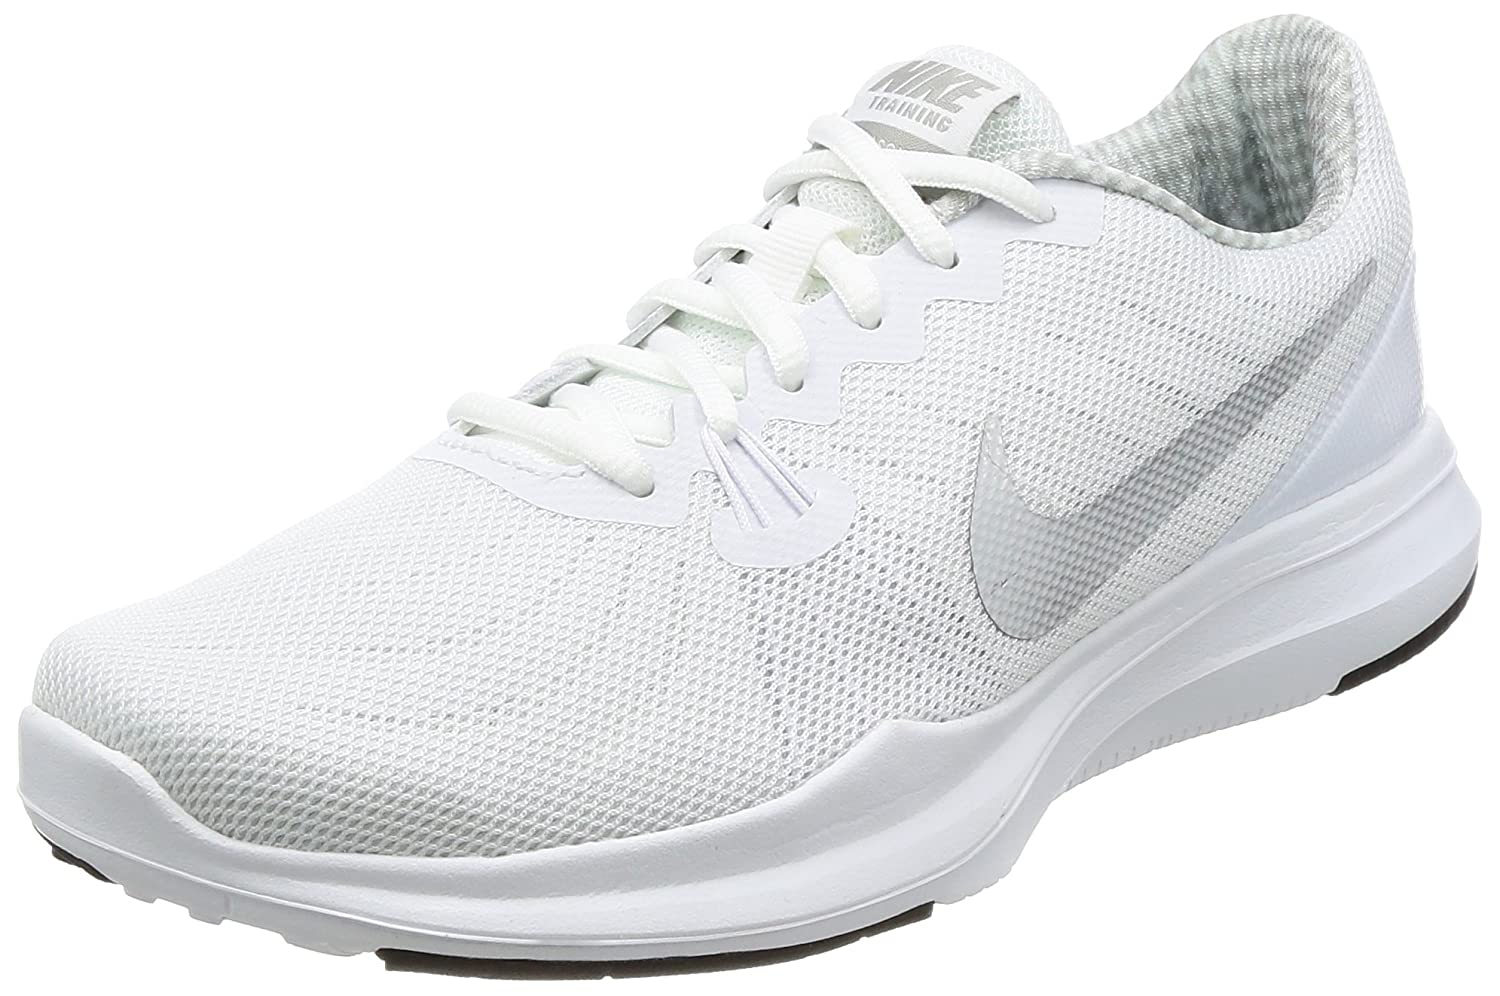 White Silver Nike Womens in-Season Trainer 7 Cross Trainer